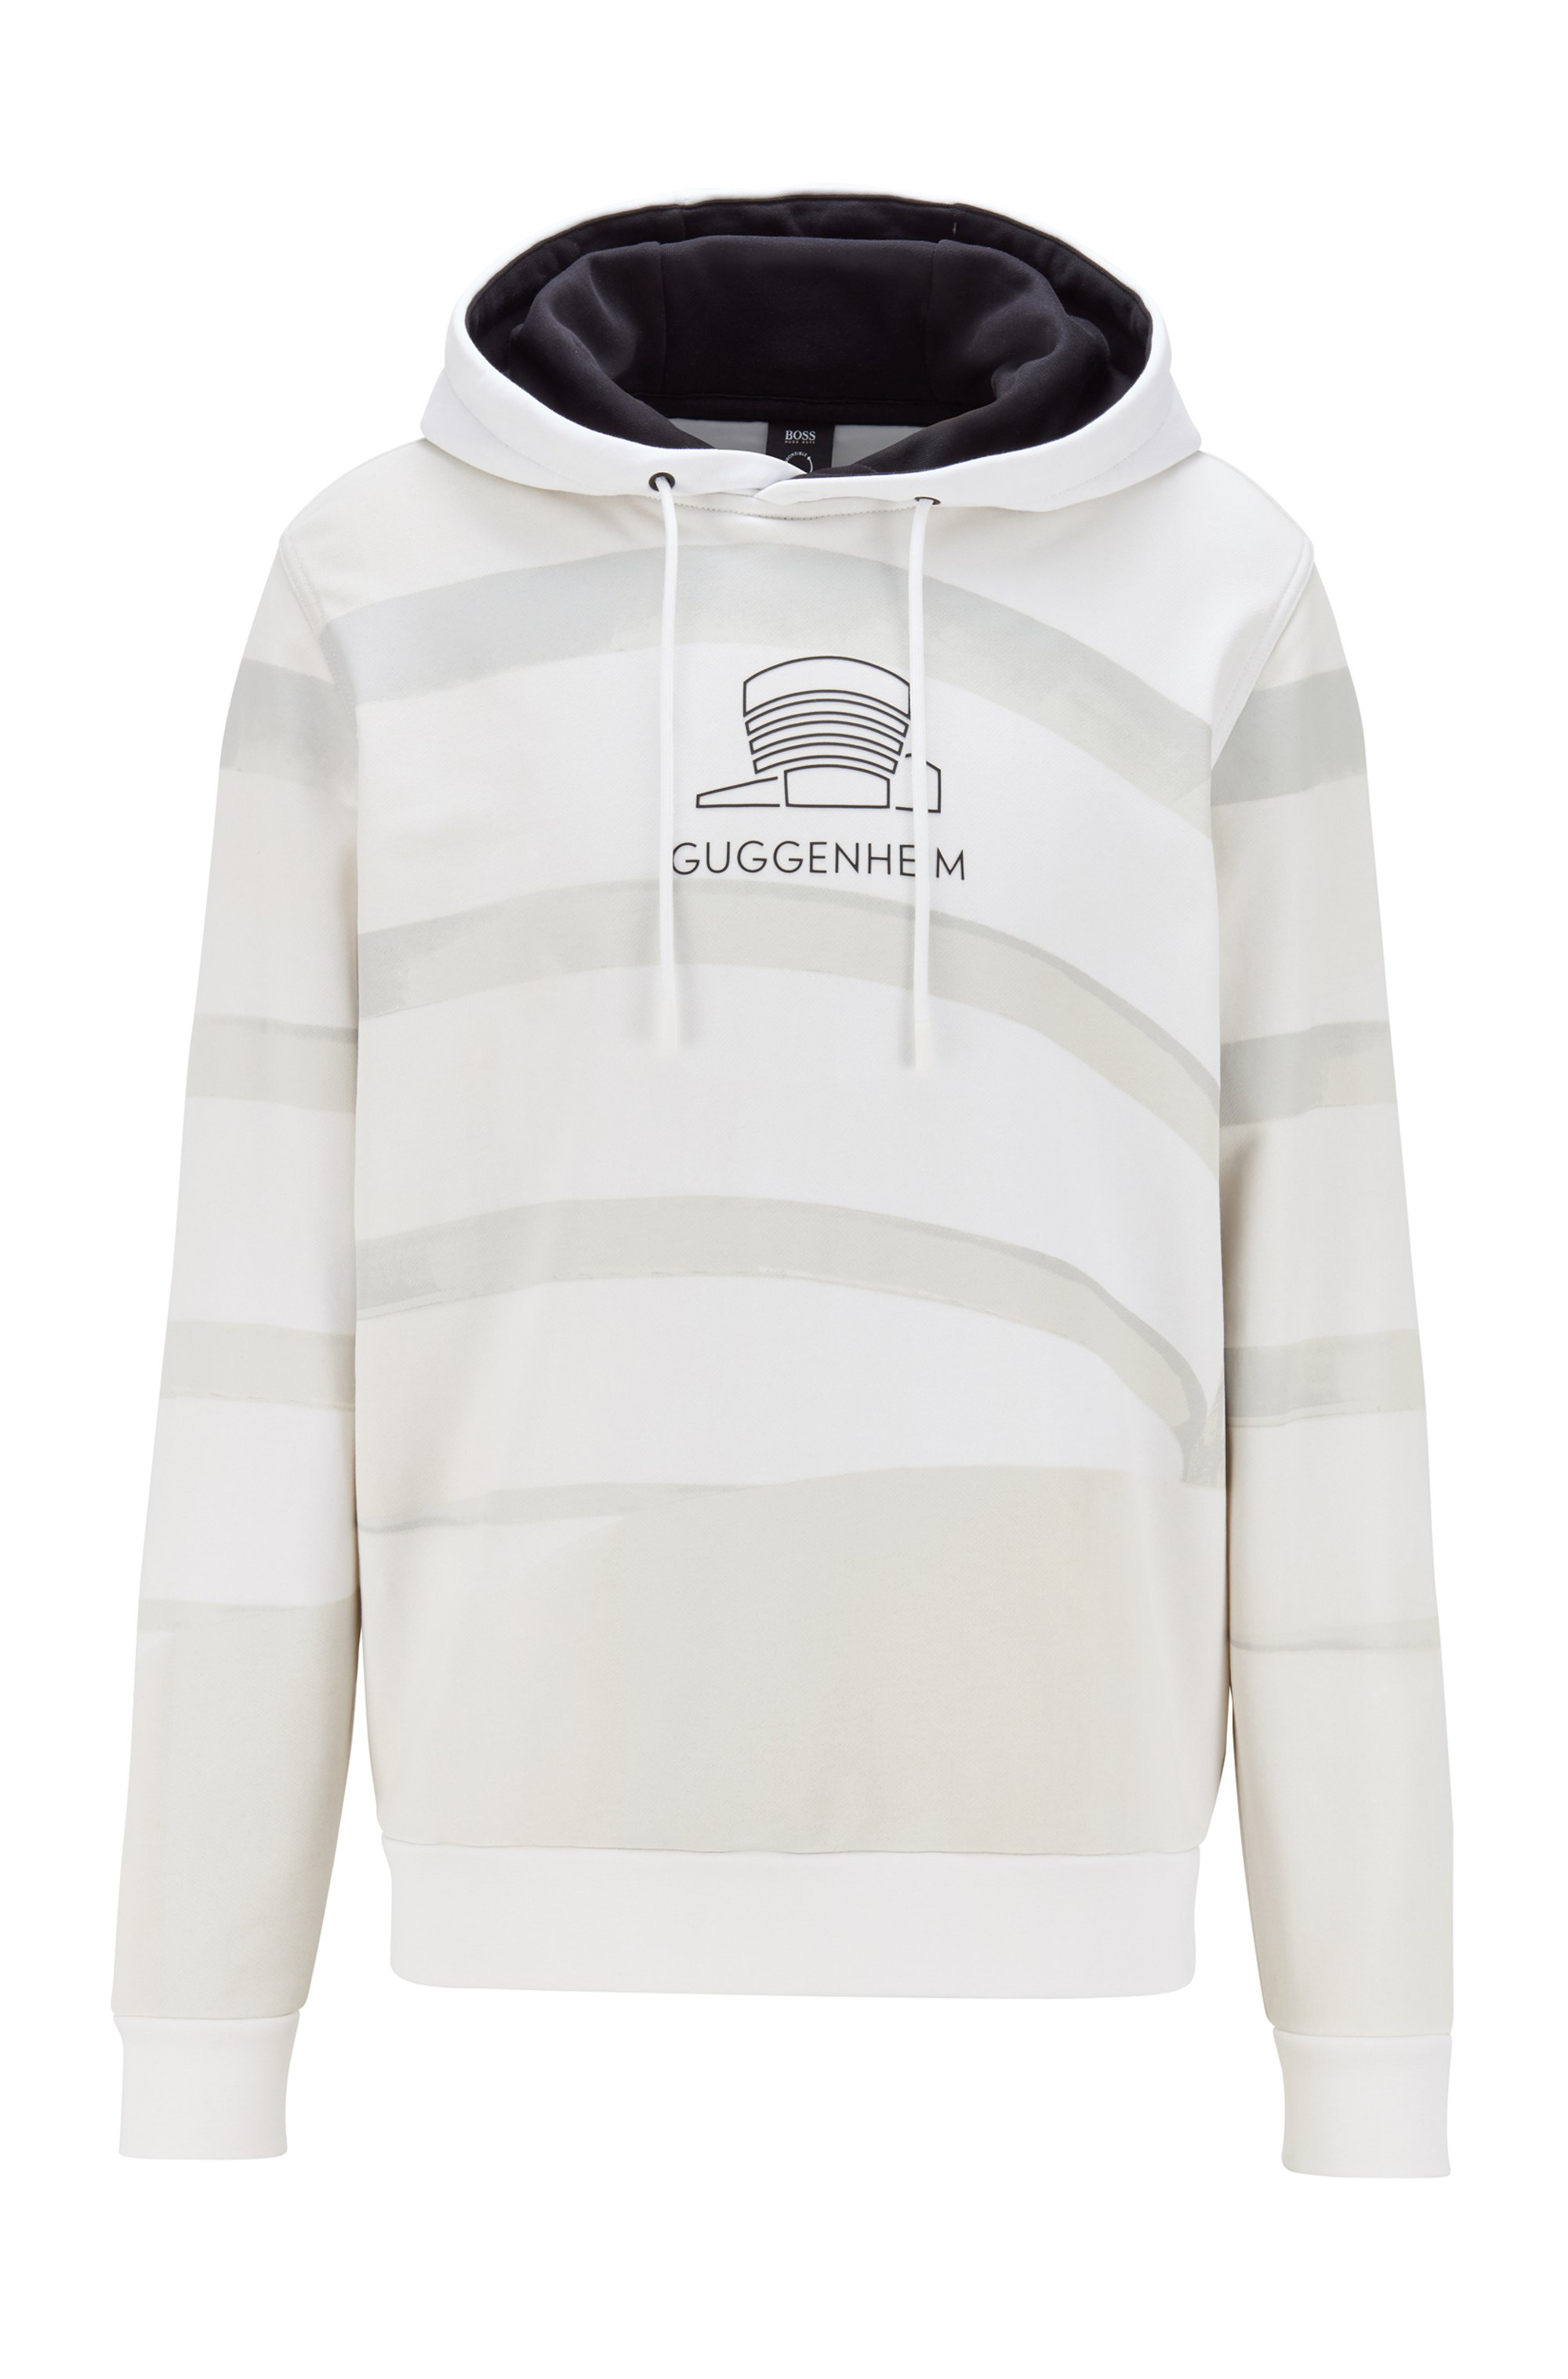 Unisex relaxed-fit hooded sweatshirt with Guggenheim photo print, White